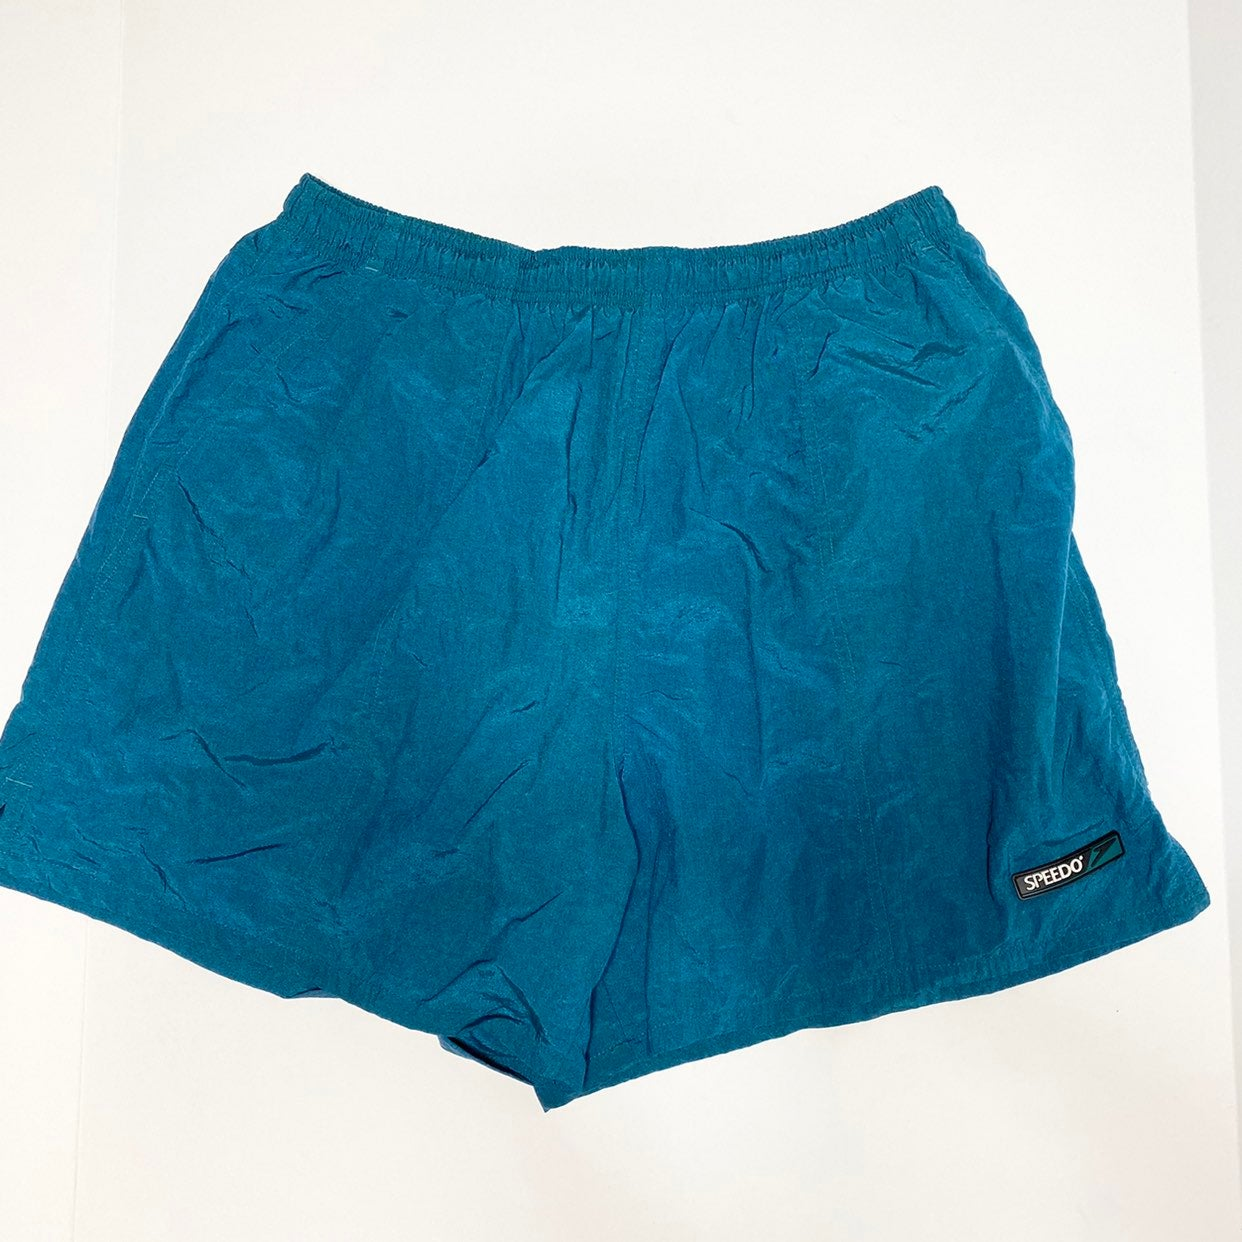 Vintage Men's Speedo Swim Trunks